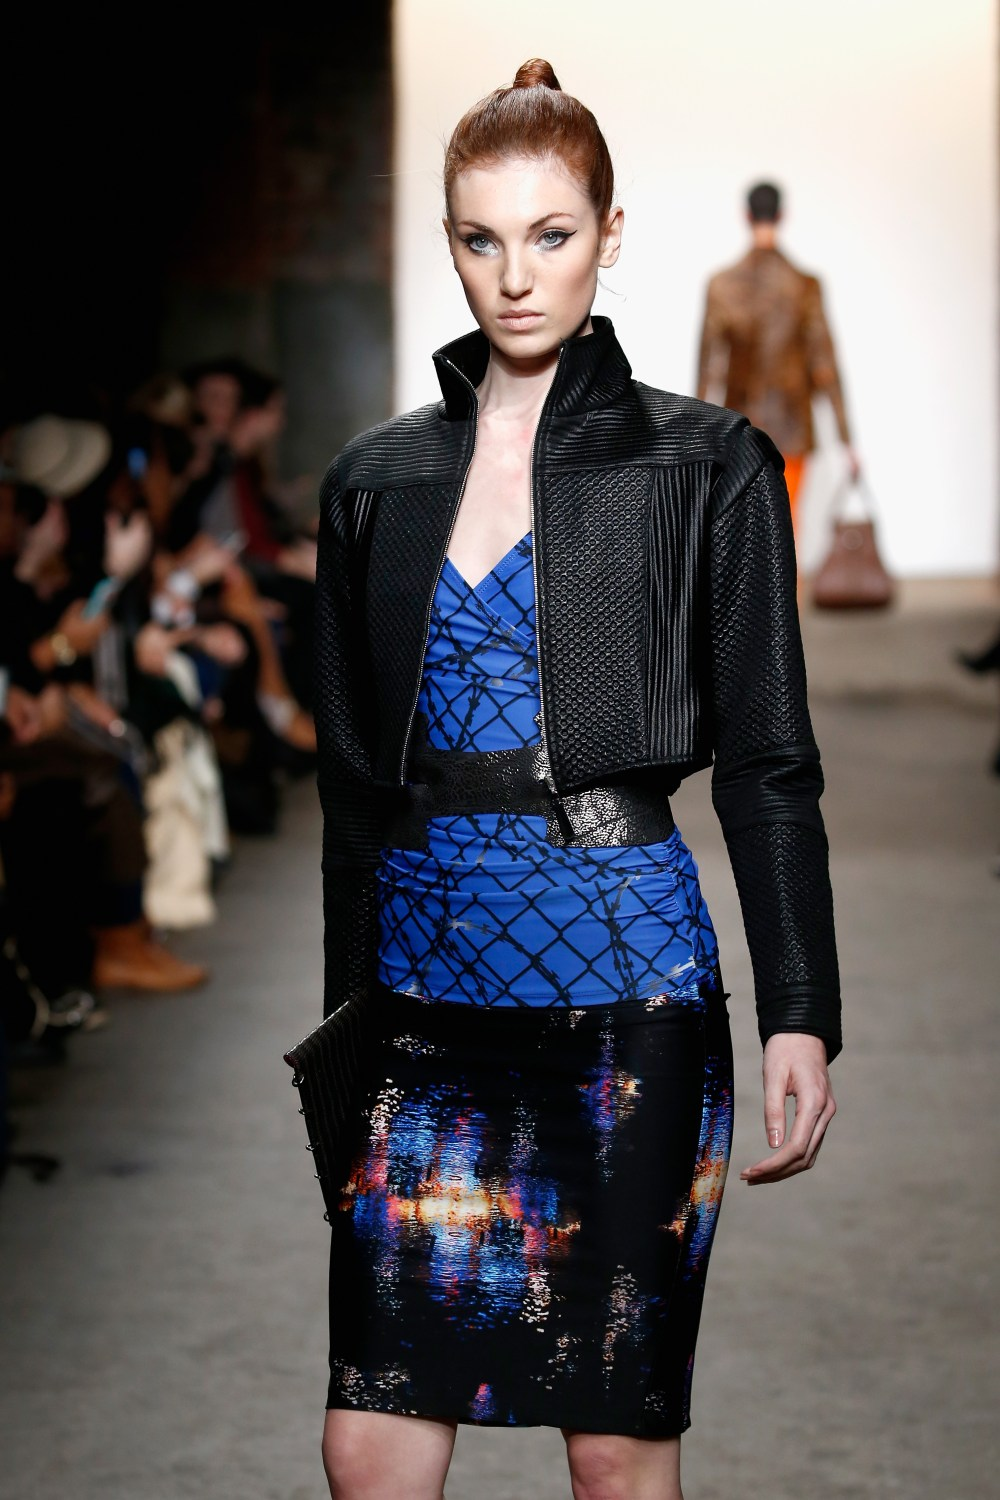 NEW YORK, NY - FEBRUARY 15: A model walks the runway wearing ACID NYC at Nolcha Shows during New York Fashion Week Women's Fall/Winter 2016 presented by Neogrid at ArtBeam on February 15, 2016 in New York City. (Photo by Brian Ach/Getty Images For Nolcha)